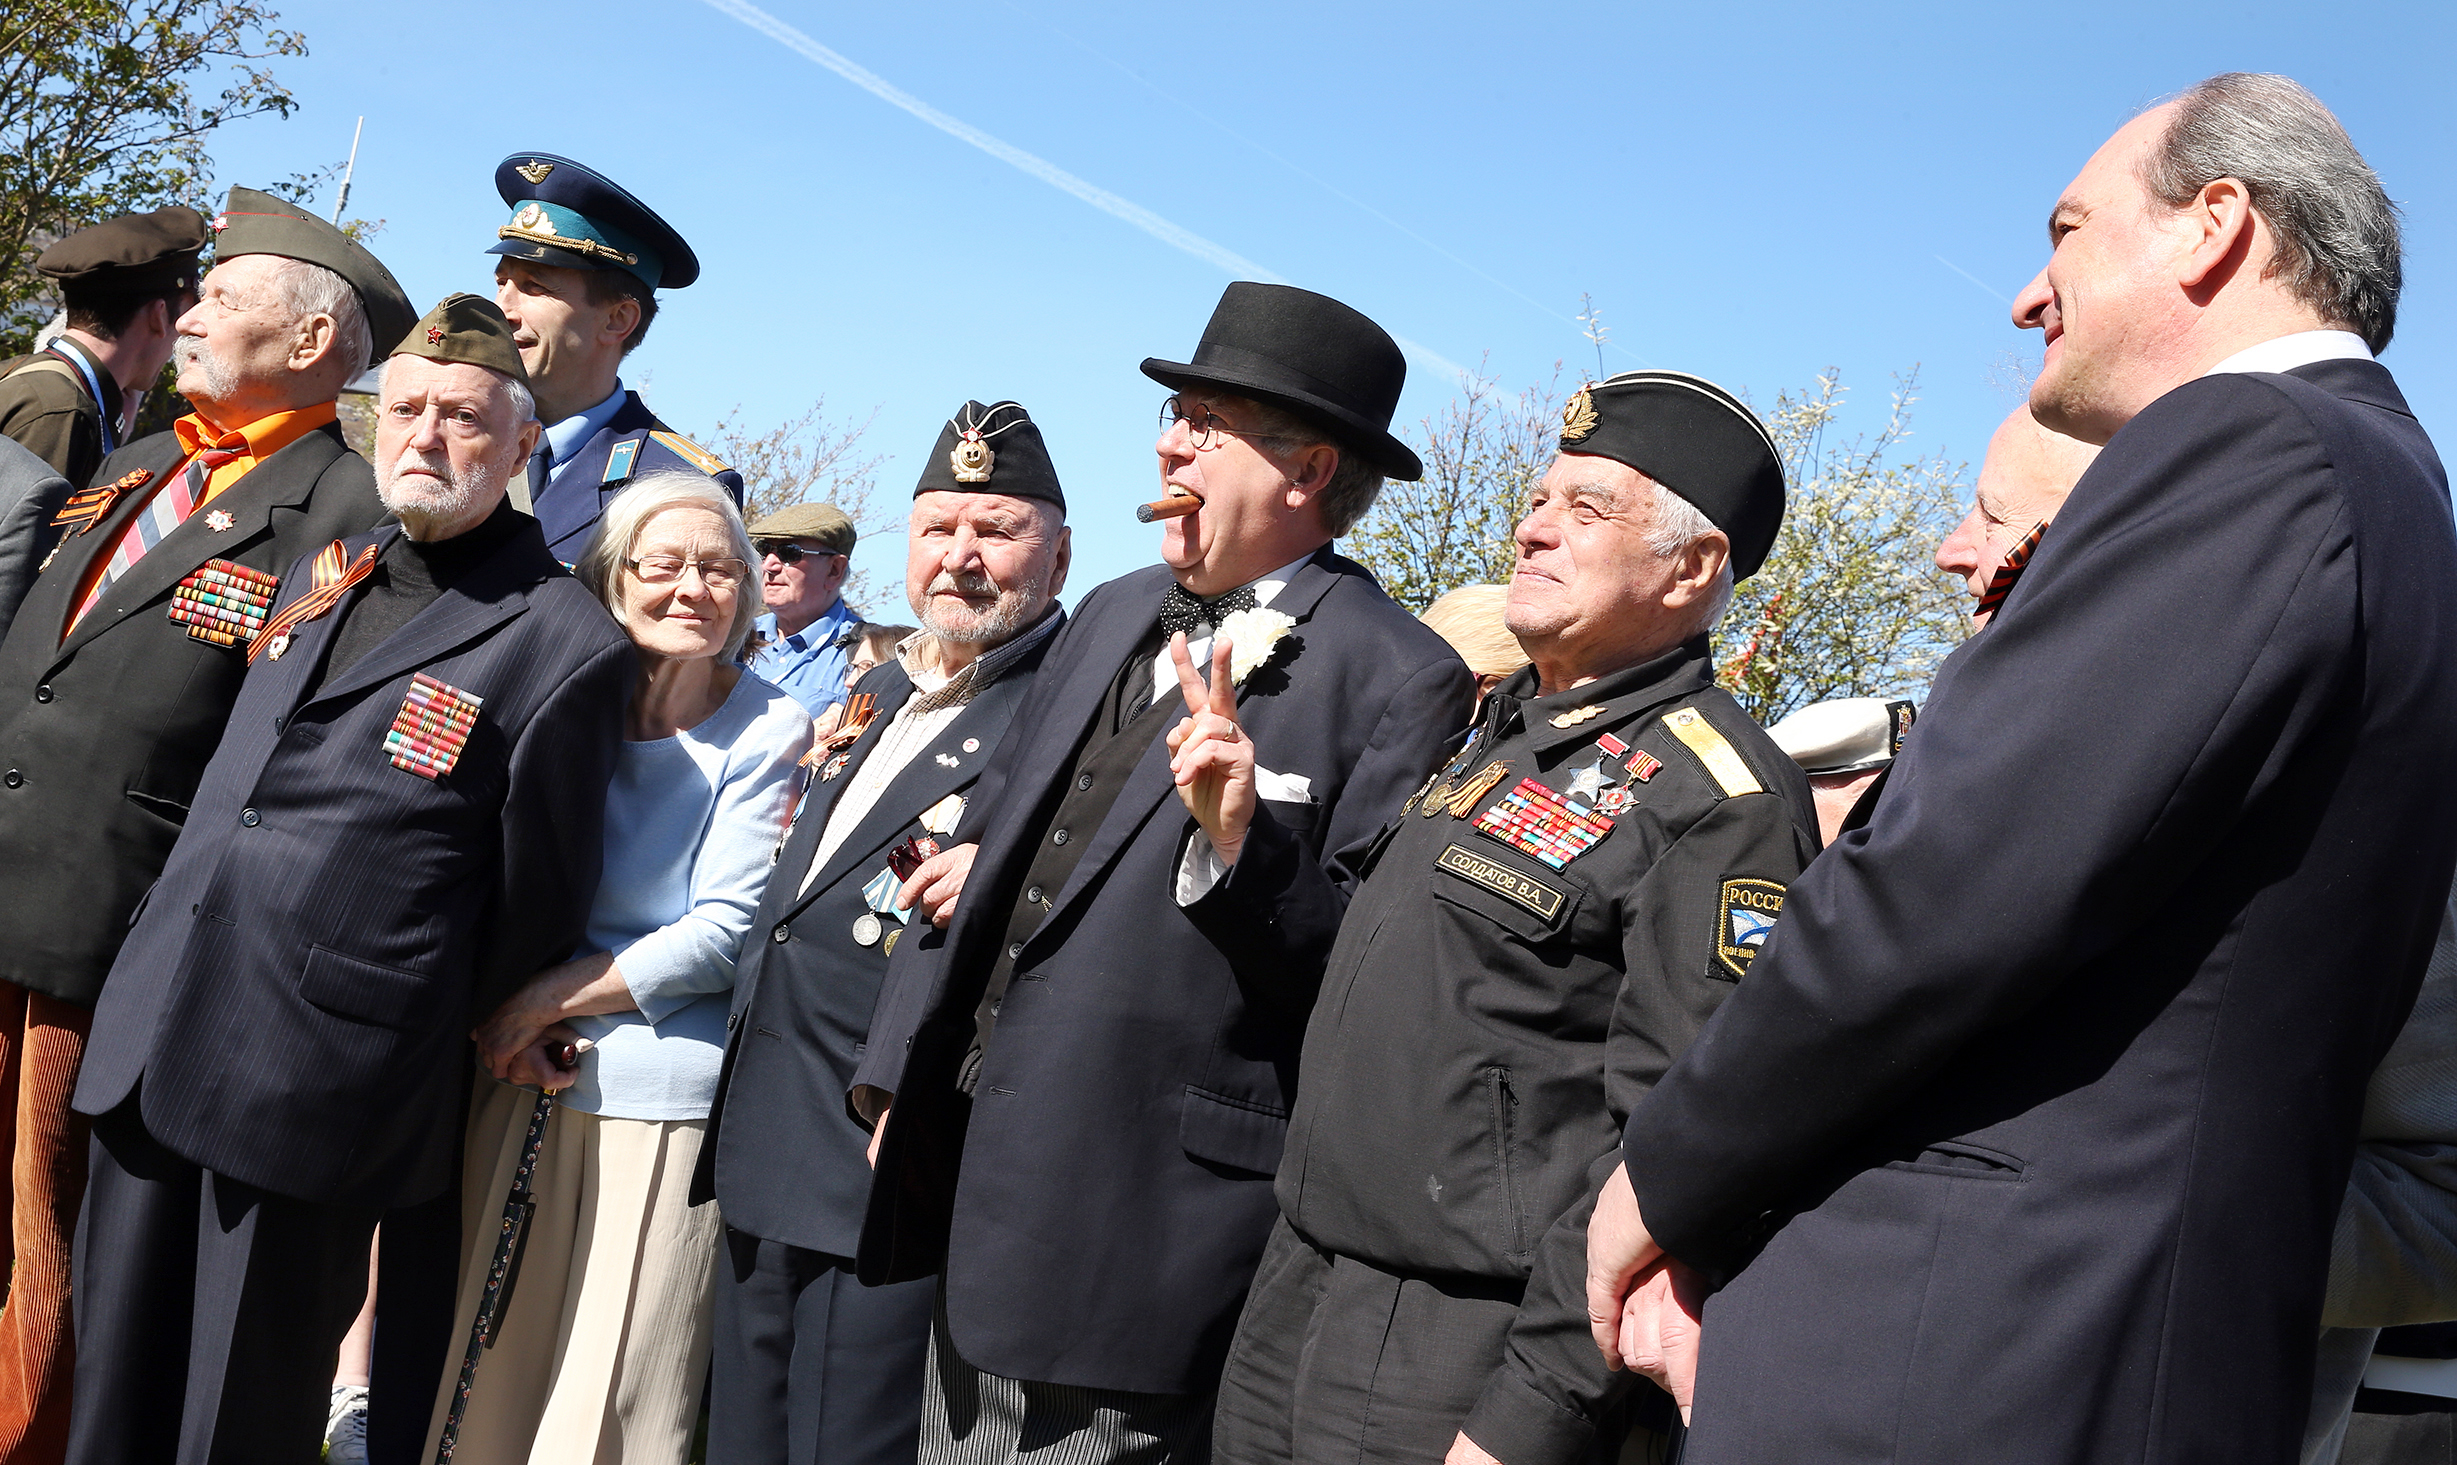 'Winston Churchill' (Richard Gumm) and some of the Russian veterans including Alexander Lochagin and Russian consul general Andrey Pritsepokev.